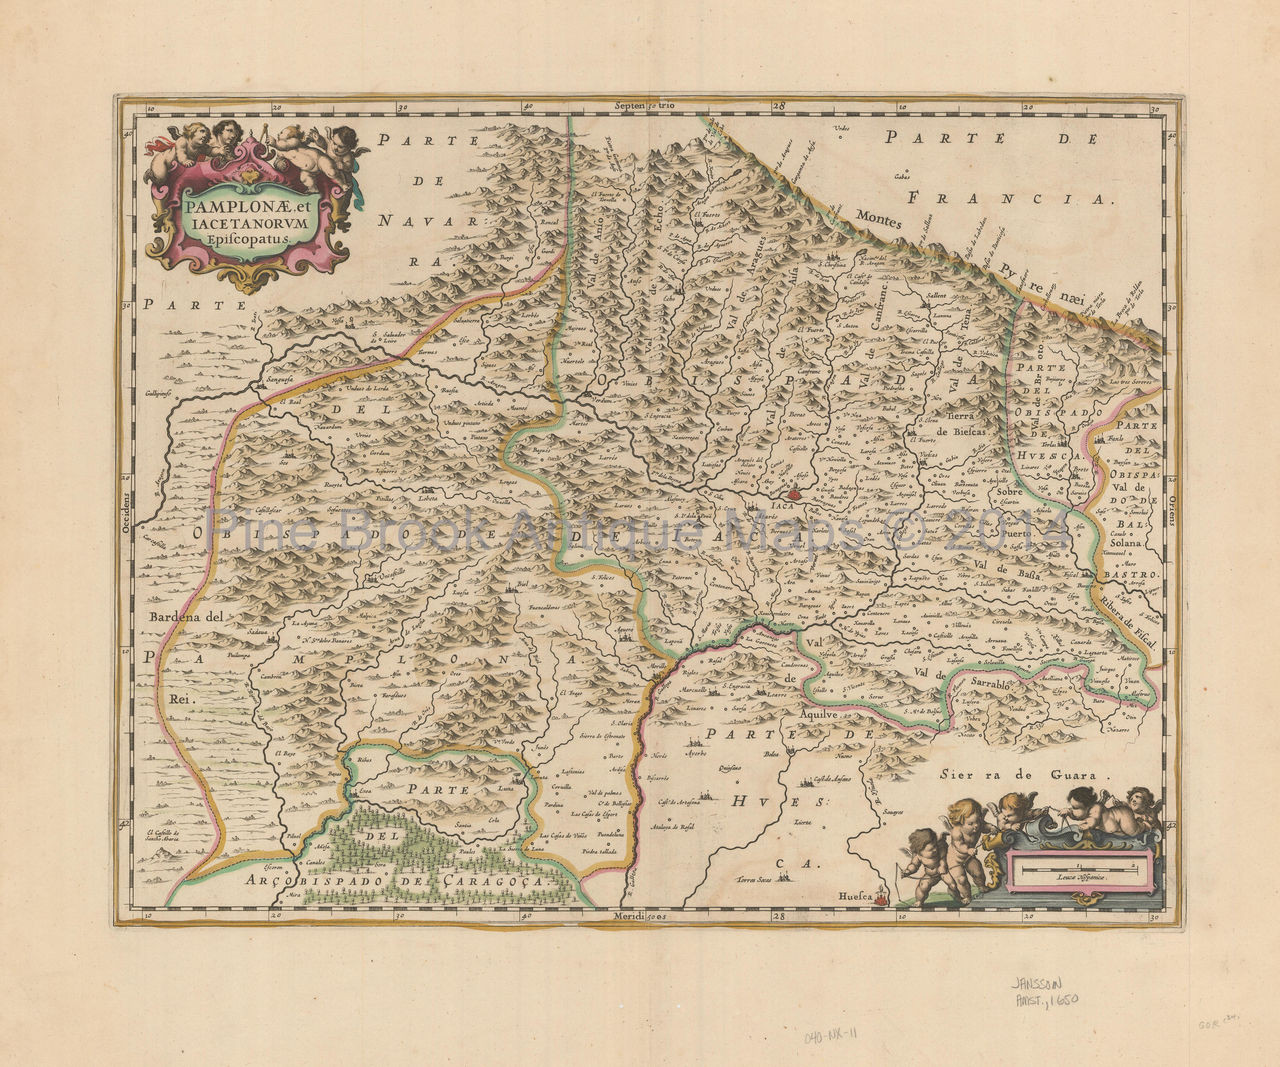 Map Of Spain Huesca.Jaca Huesca Spain Antique Map Jansson 1650